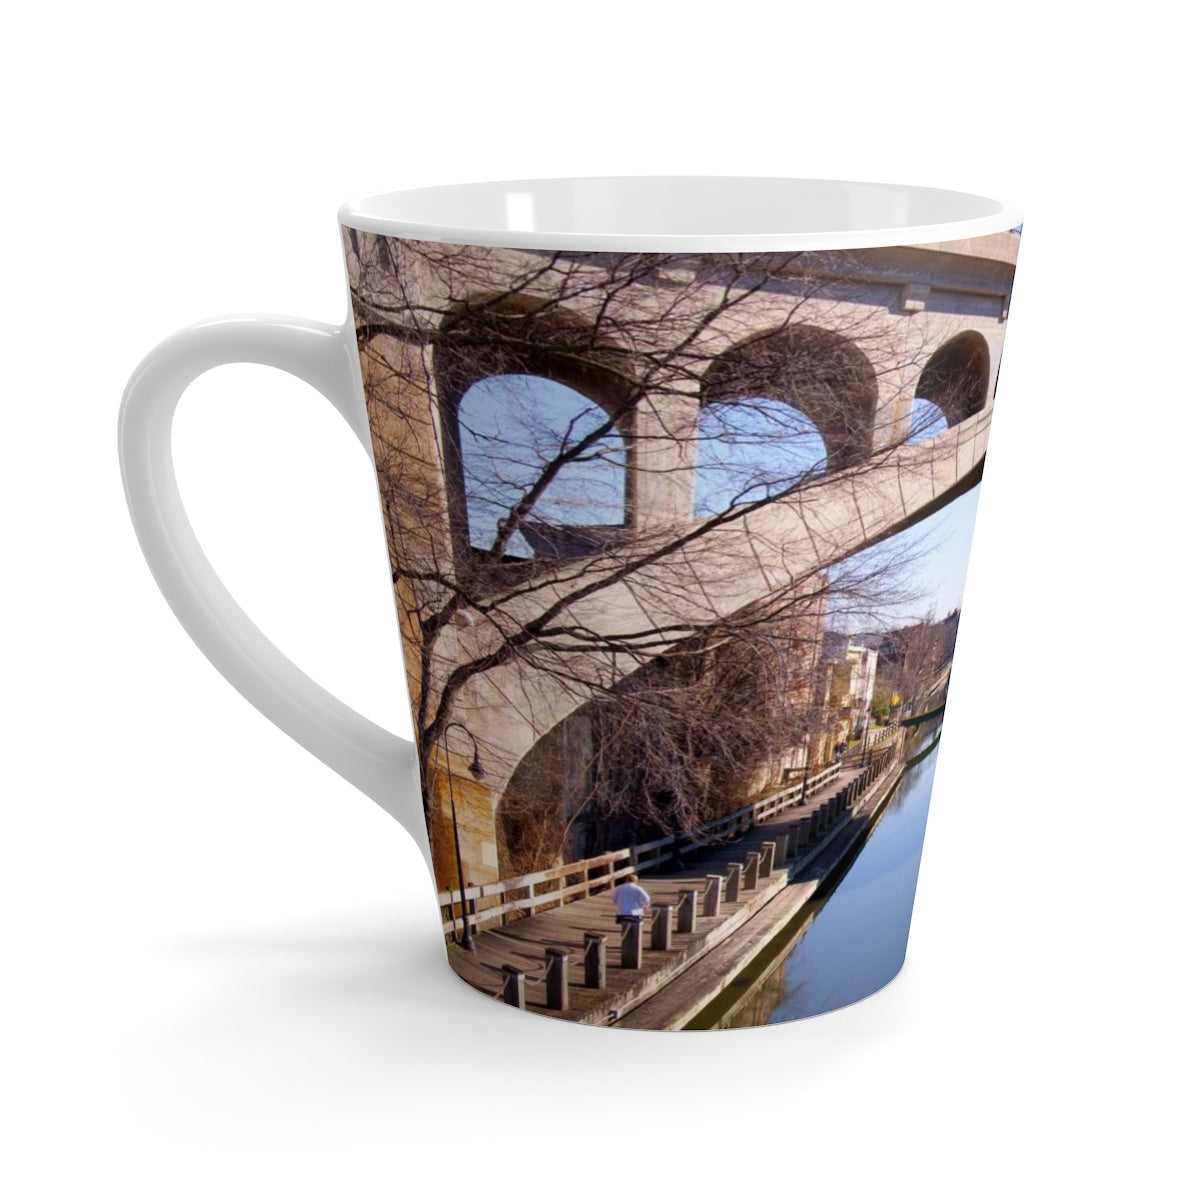 Manayunk Bridge Latte mug